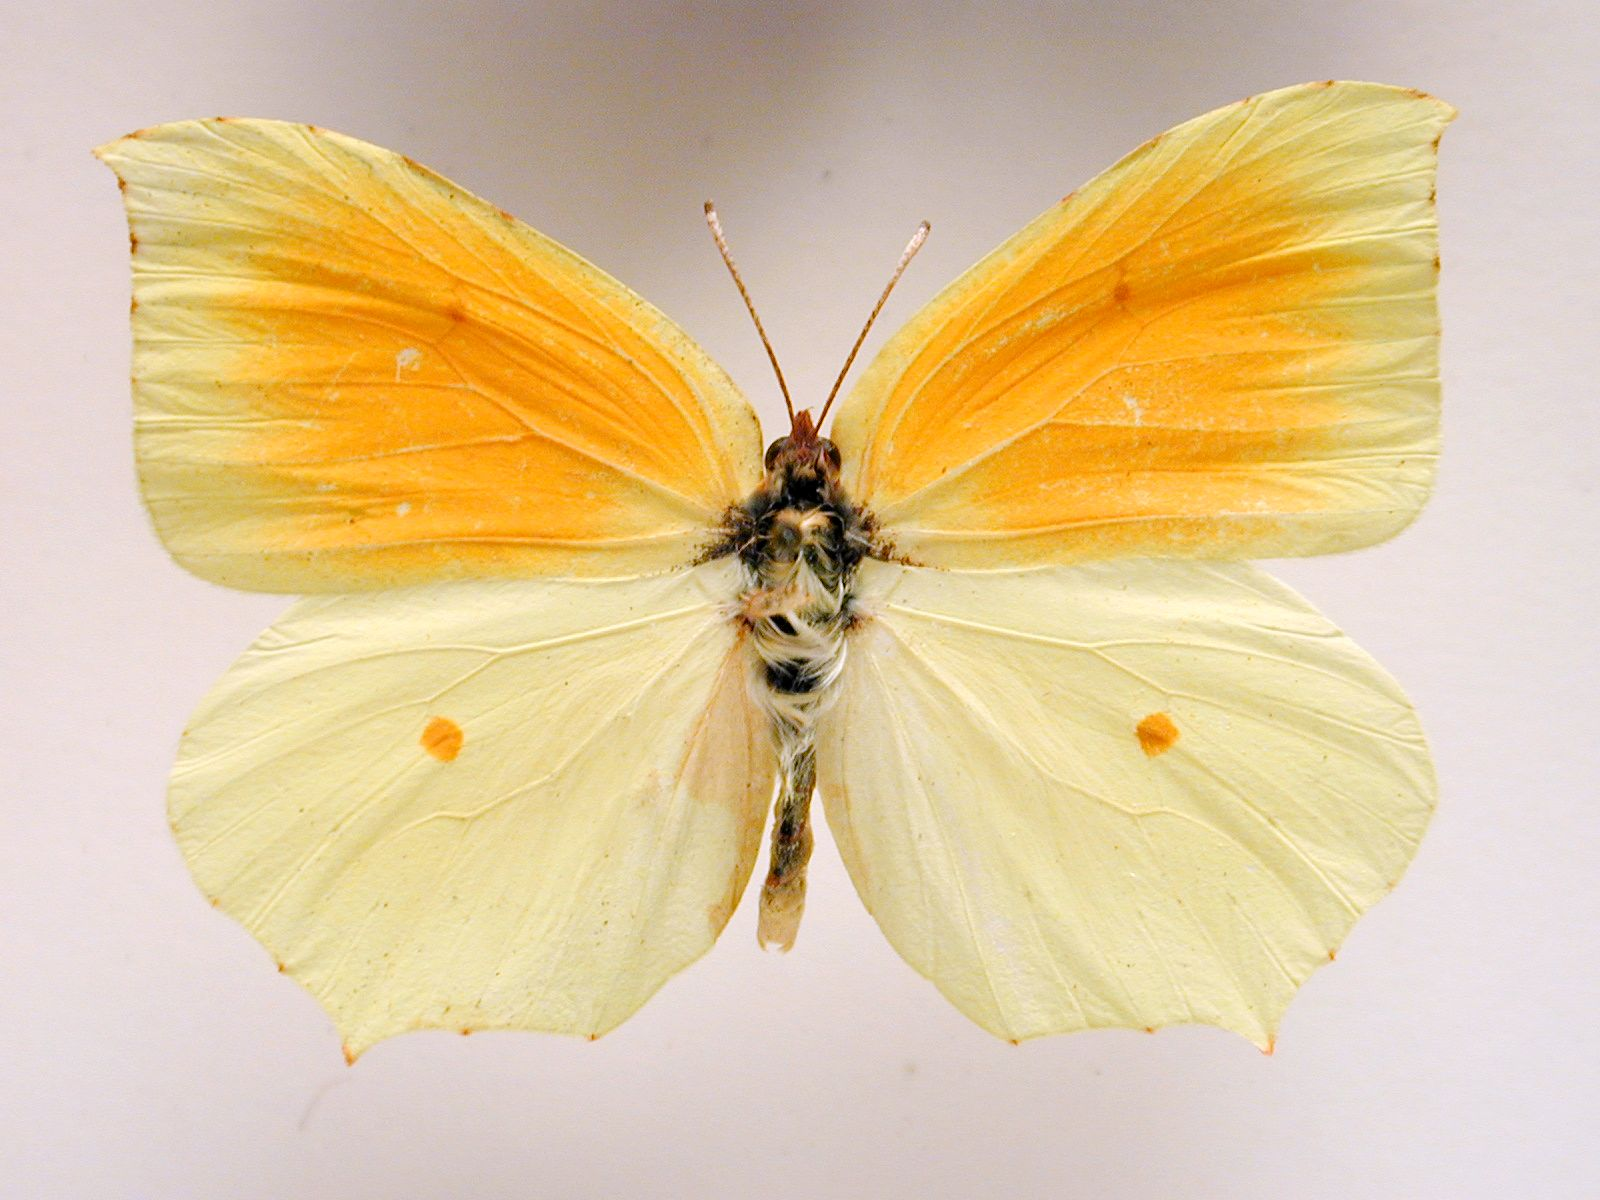 butterfly insect top wing wings vein hair hairy orange beige mirrorring mirrorred mirror white small top hires